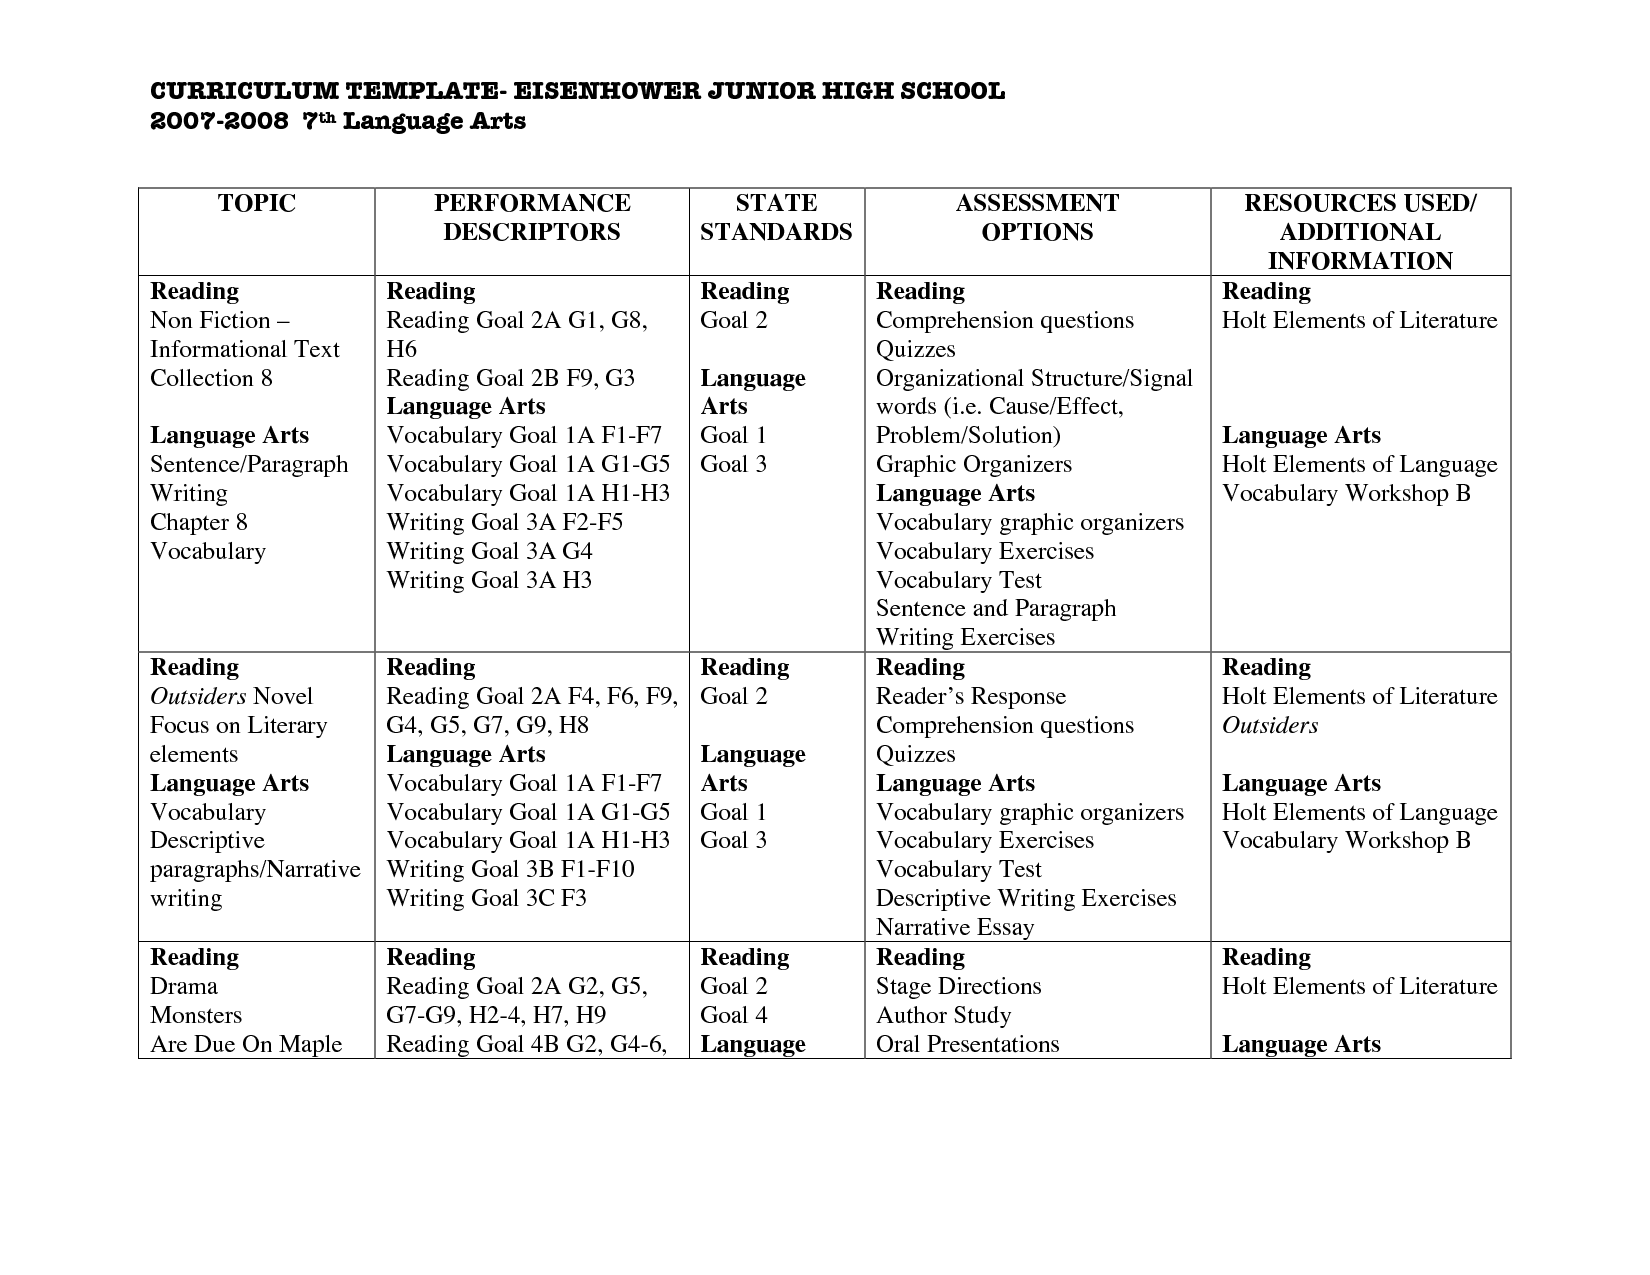 curriculum template eisenhower junior high school language arts curriculum template eisenhower junior high school language arts topic